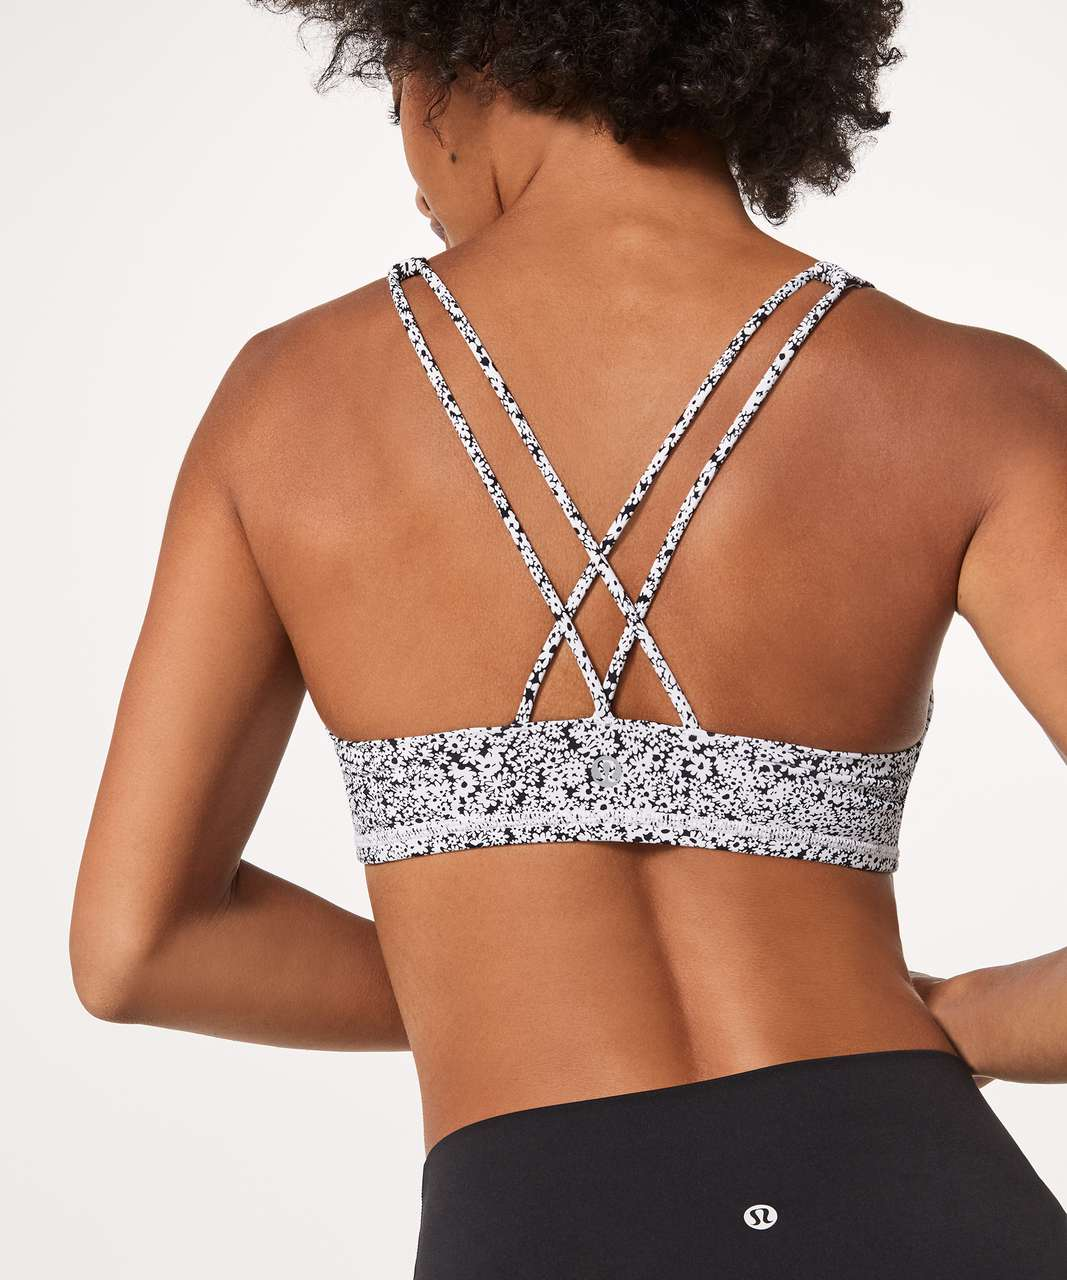 Lululemon Free To Be Bra - Ditsy Daisy White Black